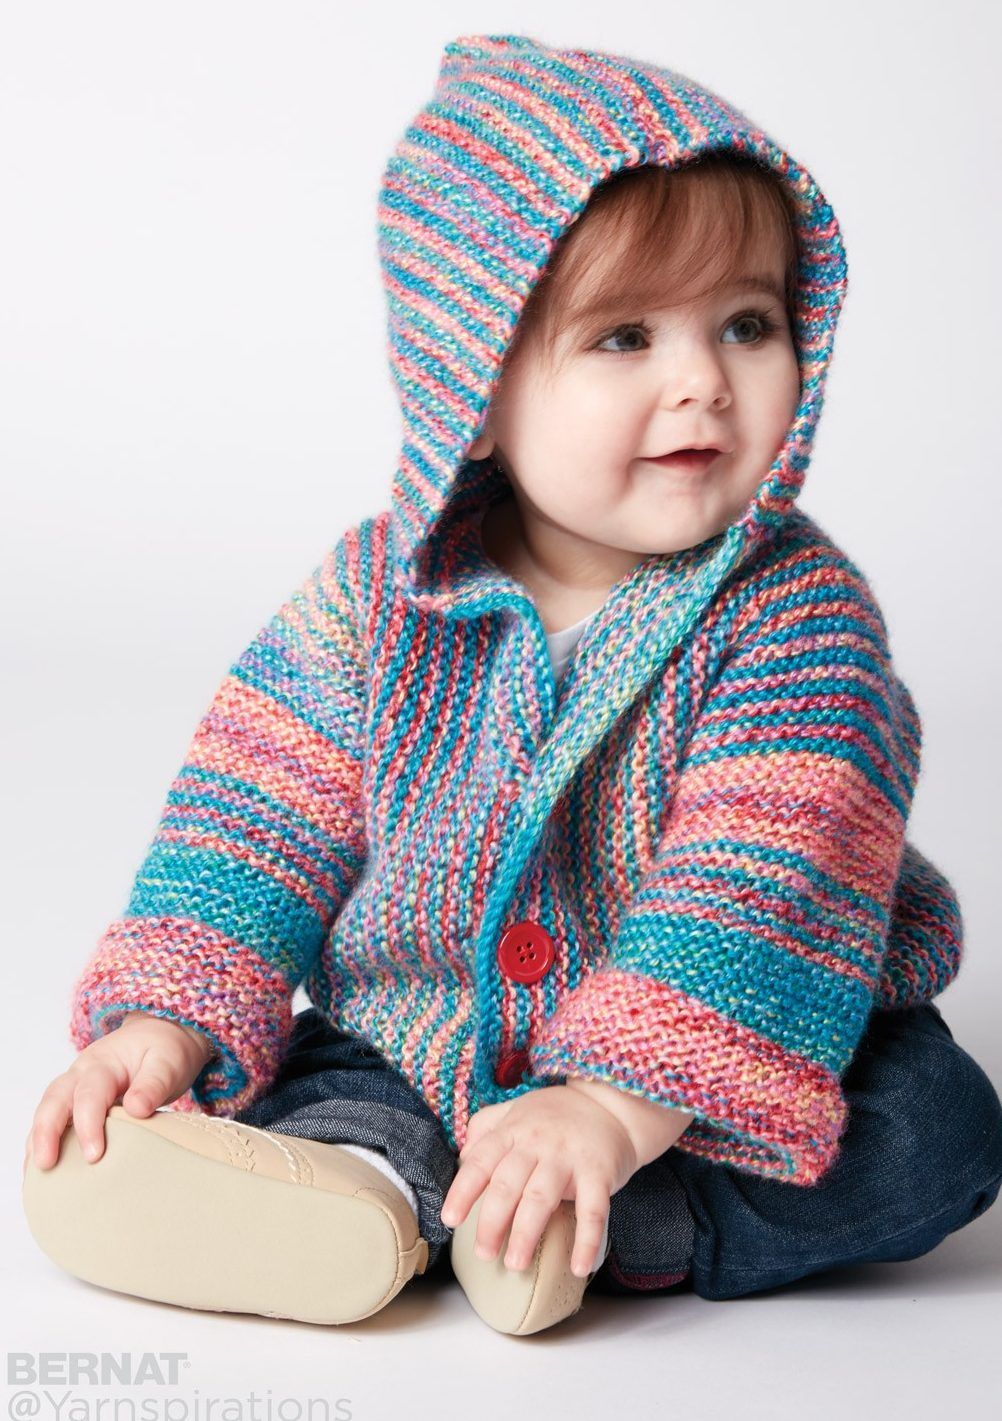 Knitted Jacket Patterns Free Little One Hoodie Knitting Patterns In The Loop Knitting